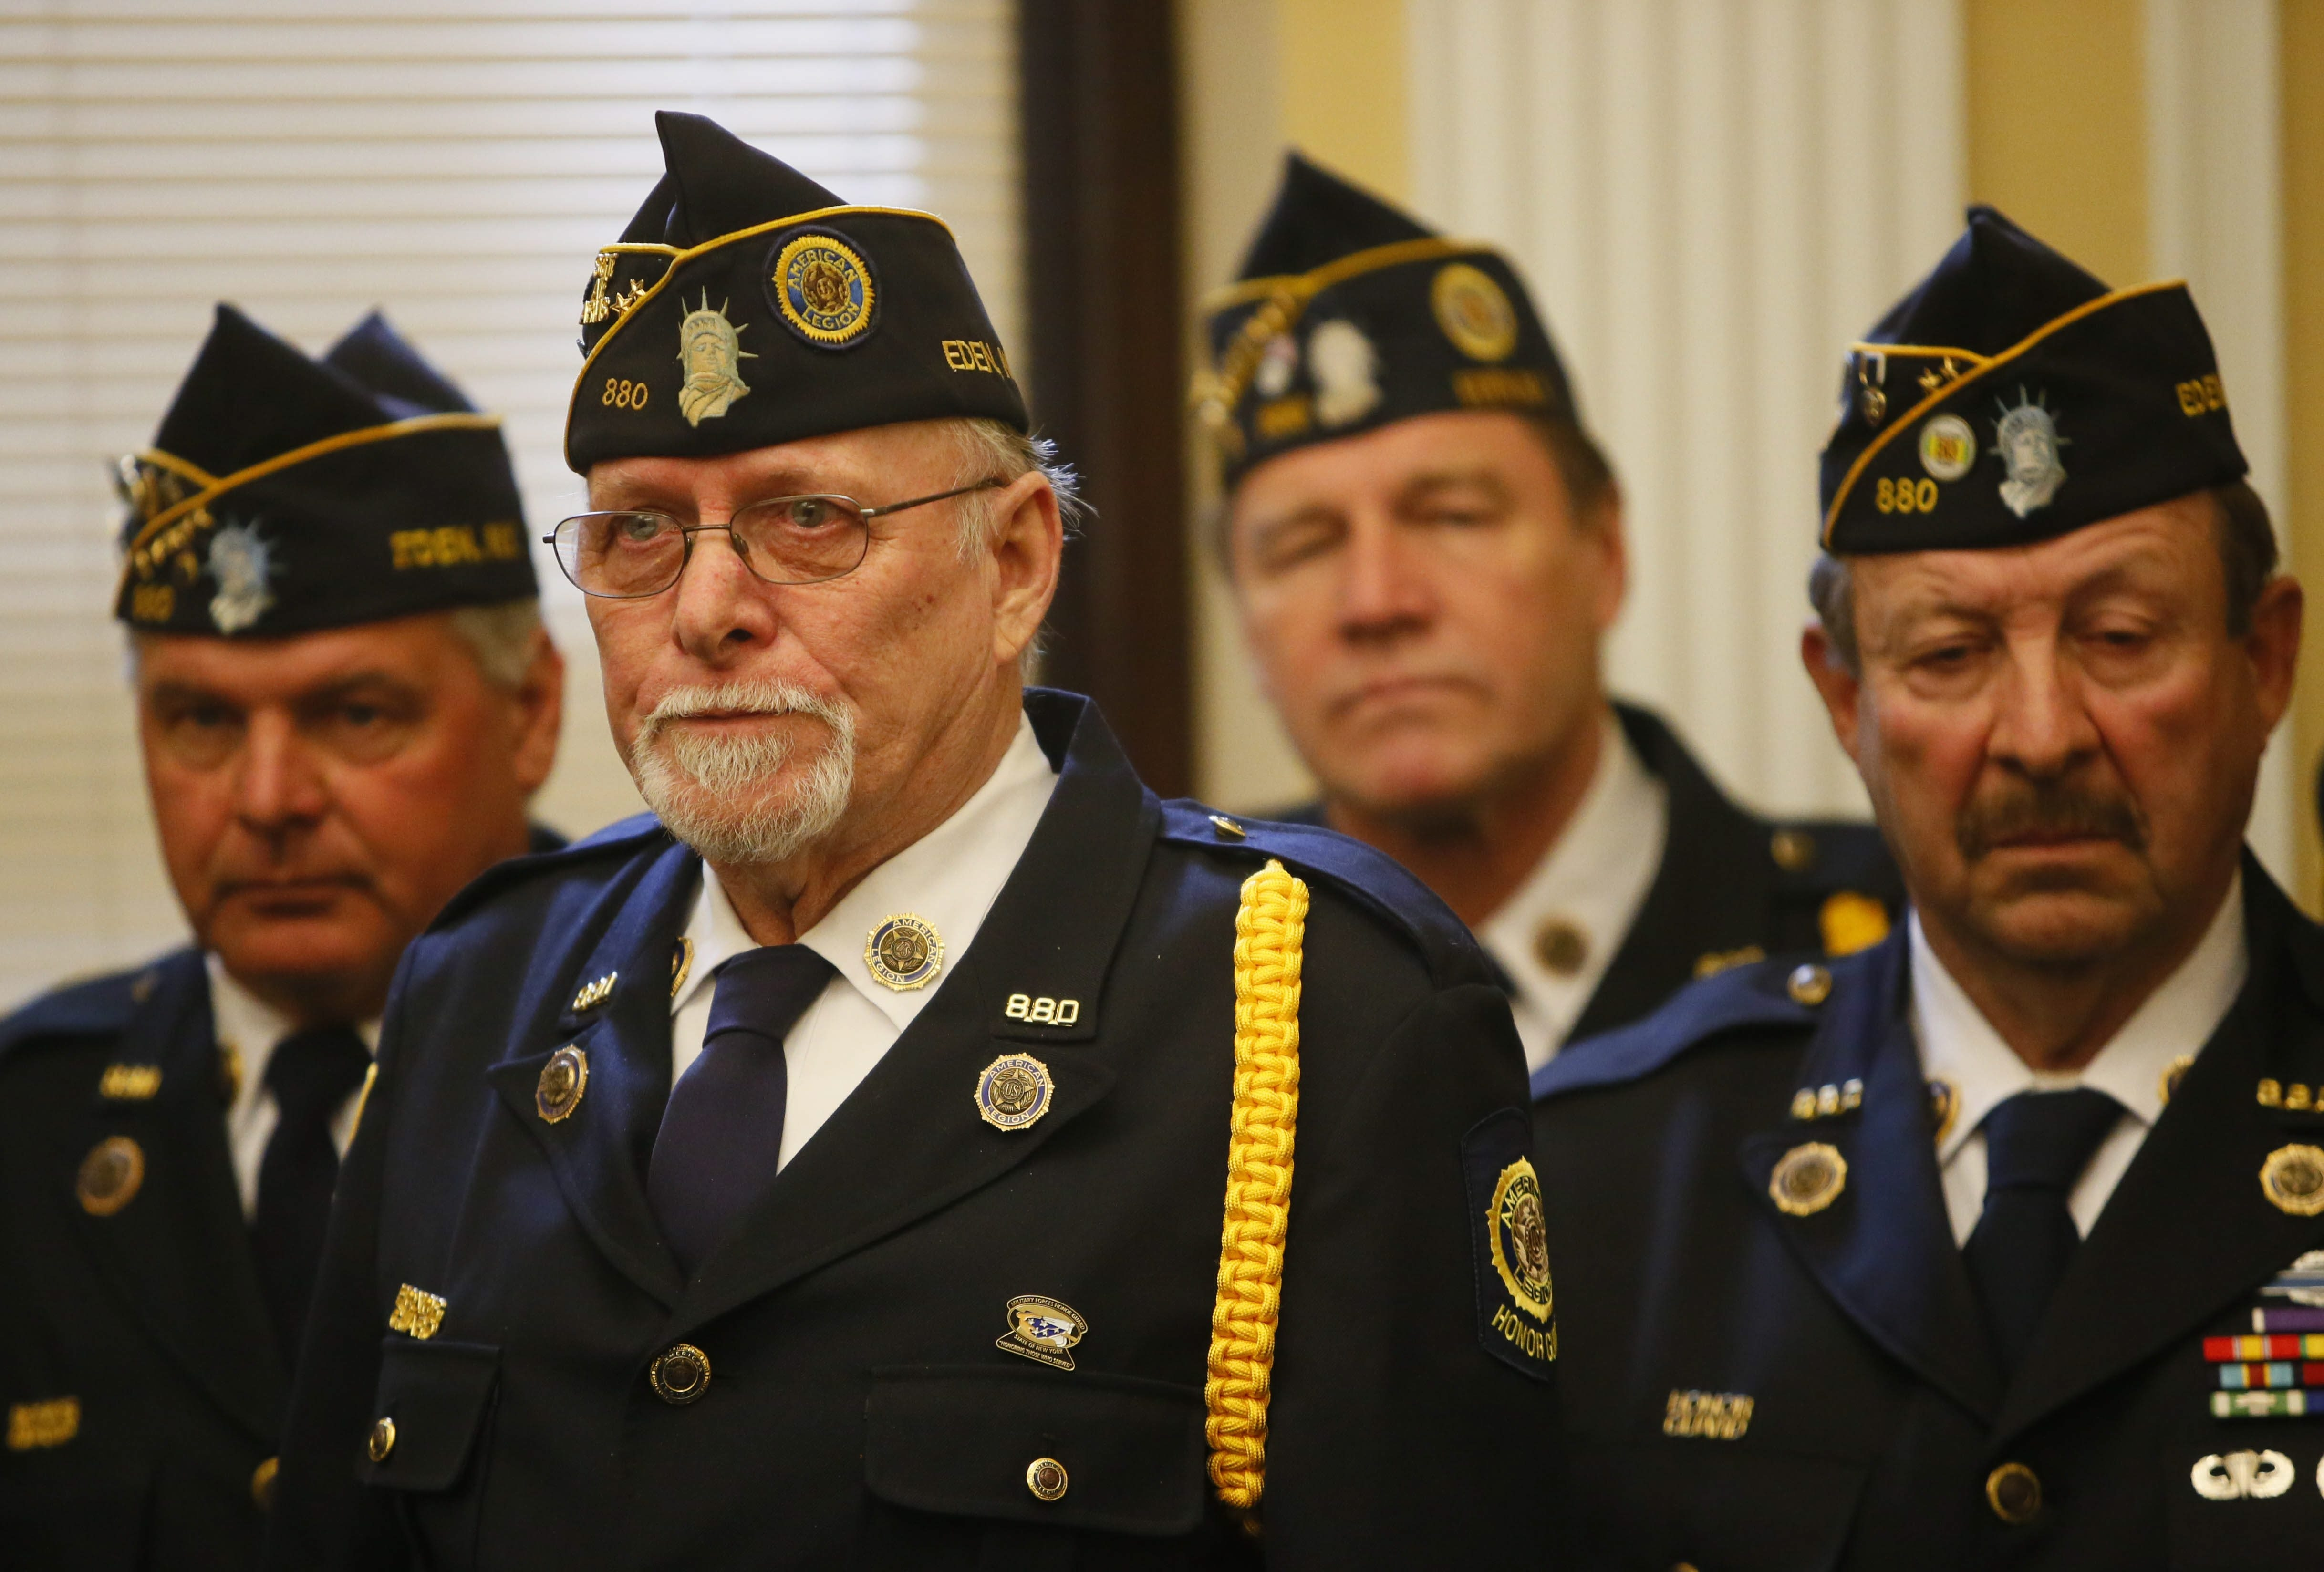 Forty-seven years after receiving wounds that earned him a second Purple Heart for Vietnam combat, Robert Franz, foreground, is joined by his American Legion buddies during the Erie County Hall ceremony to award him the medal.